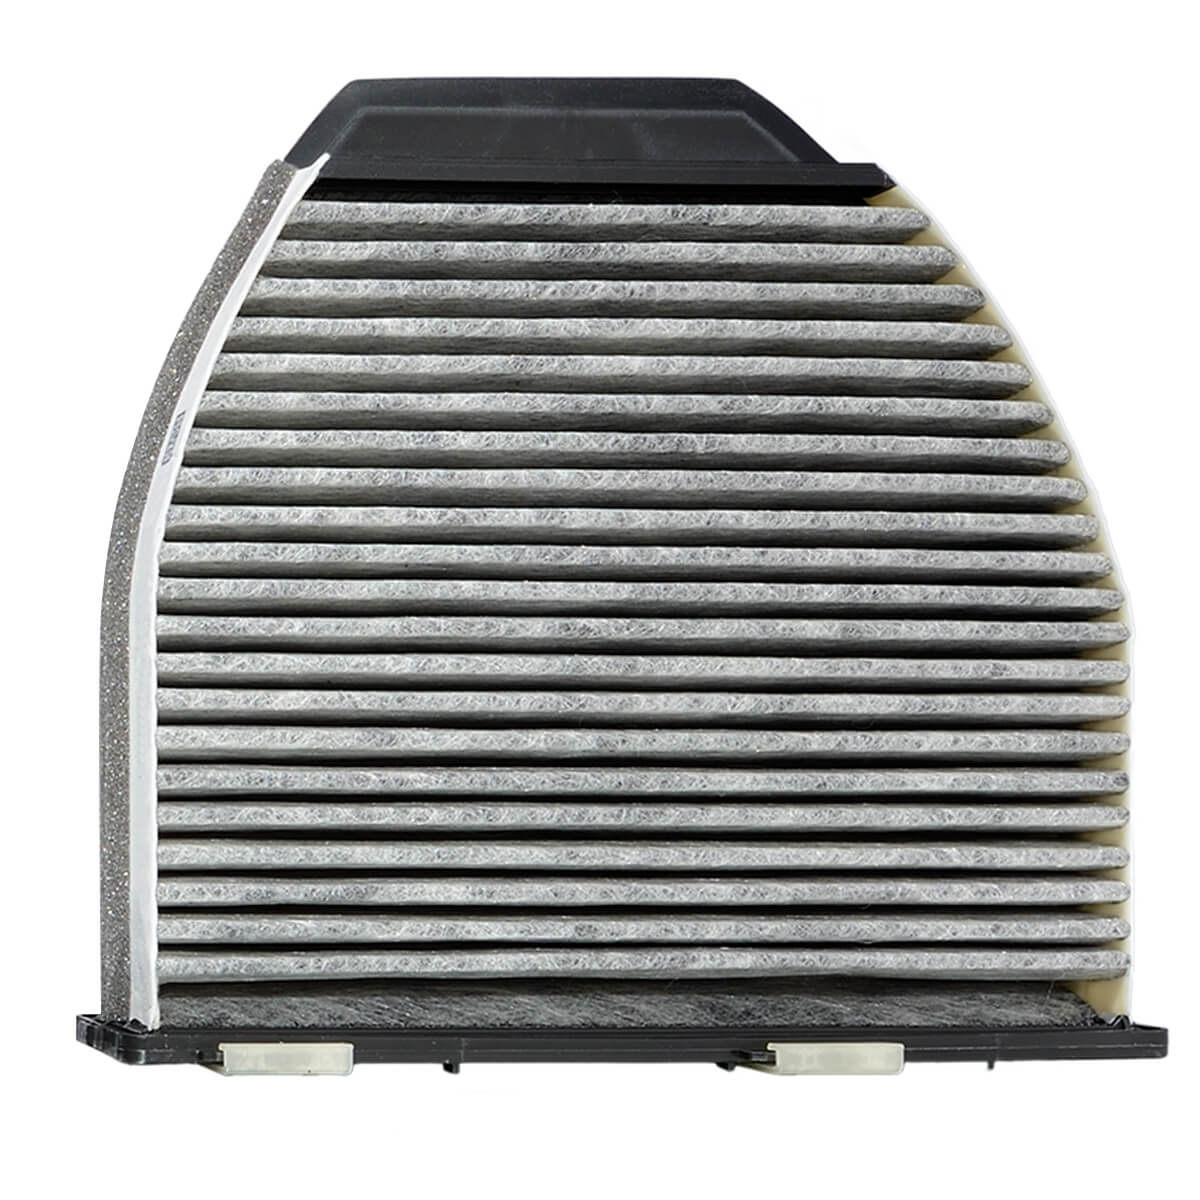 CITROEN C4 SPACETOURER Cabin Filter